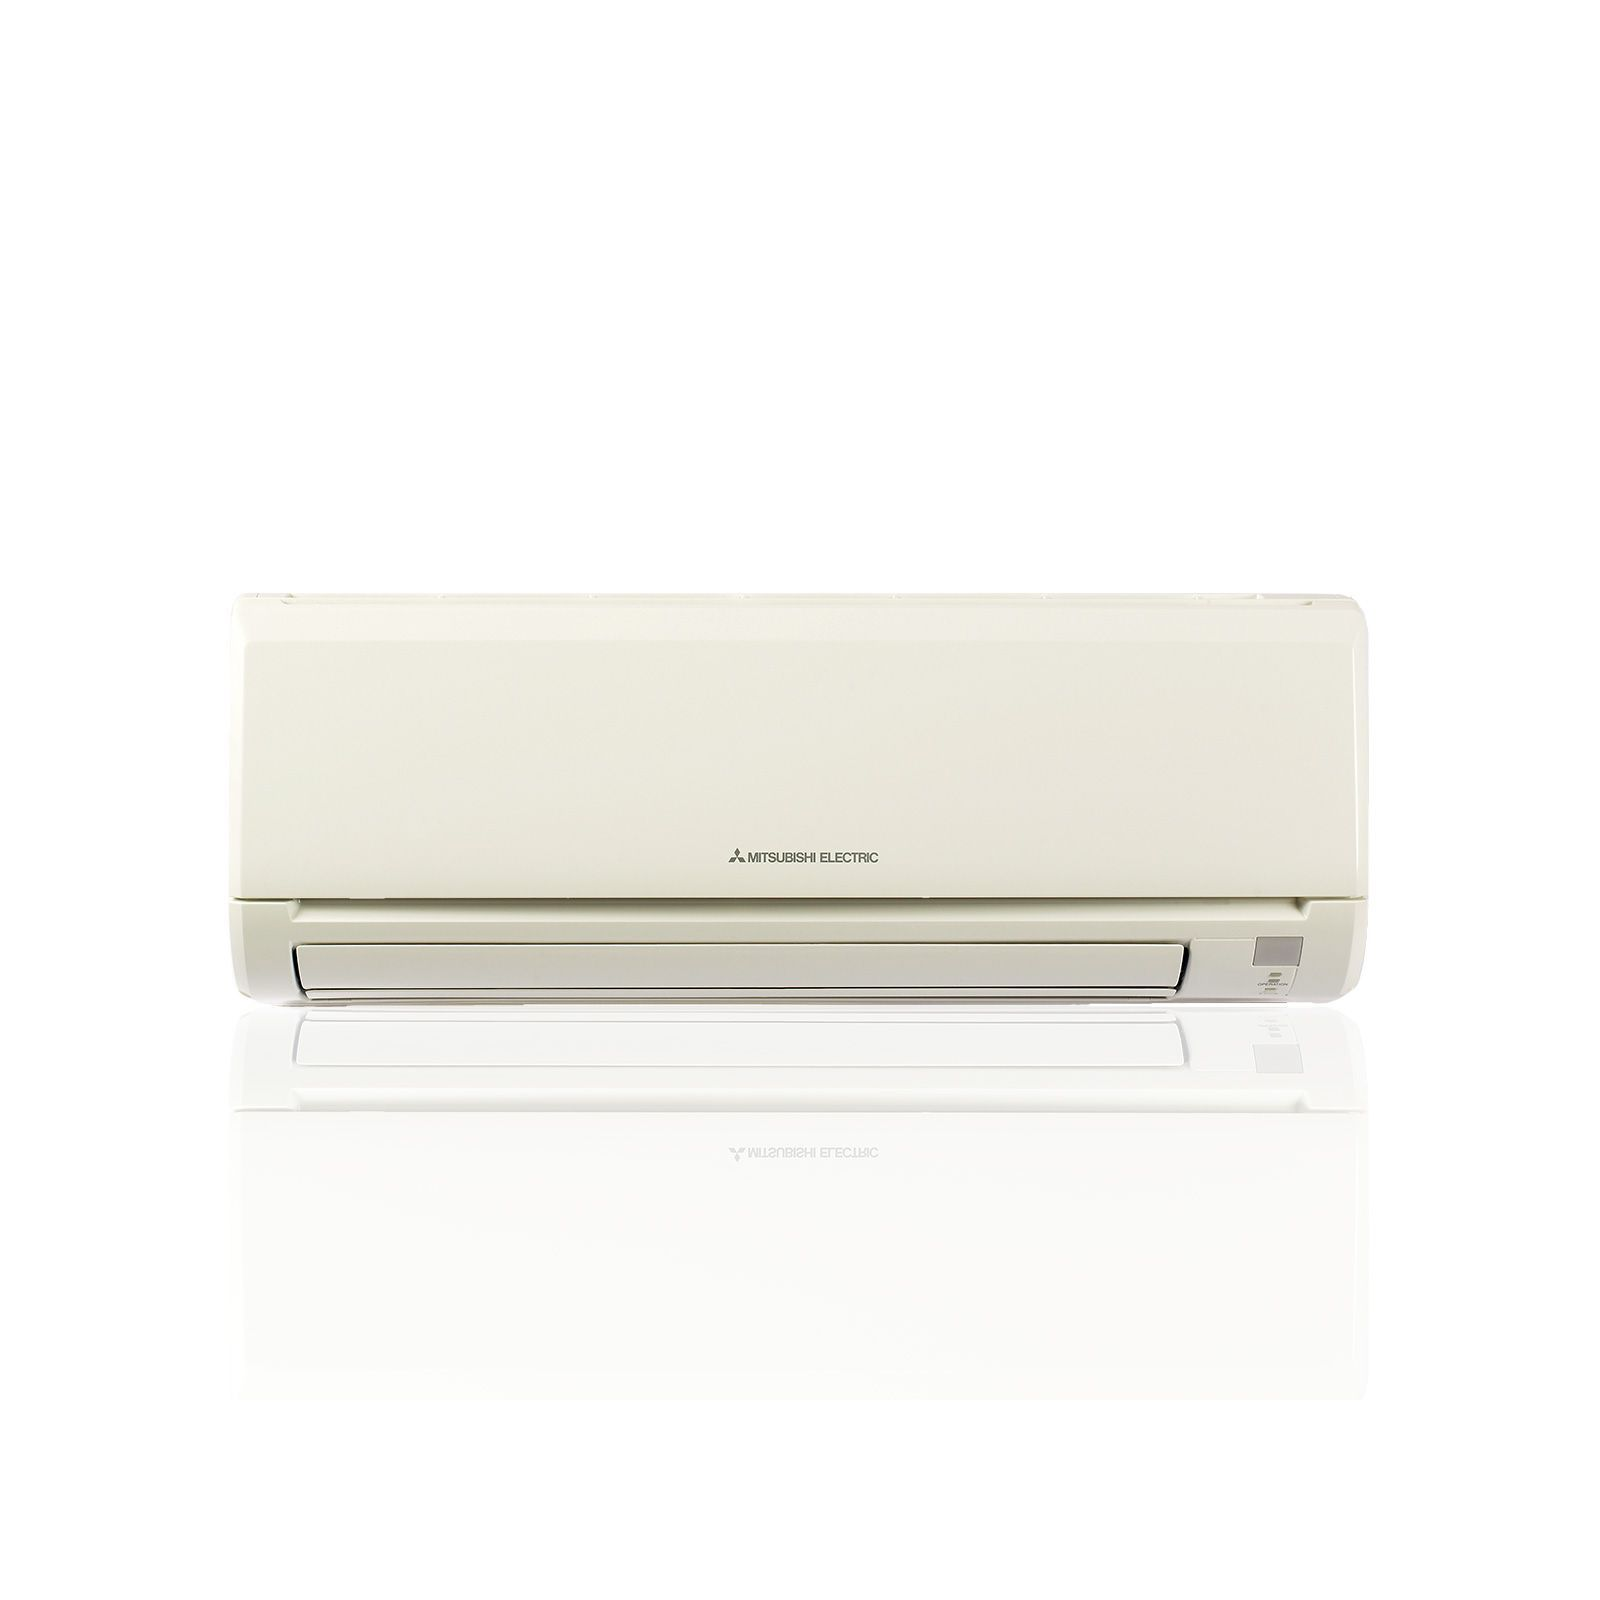 Mitsubishi Ductless Mitsubishi Ductless M Series 24000 Btu Heat Pump Wall Mounted